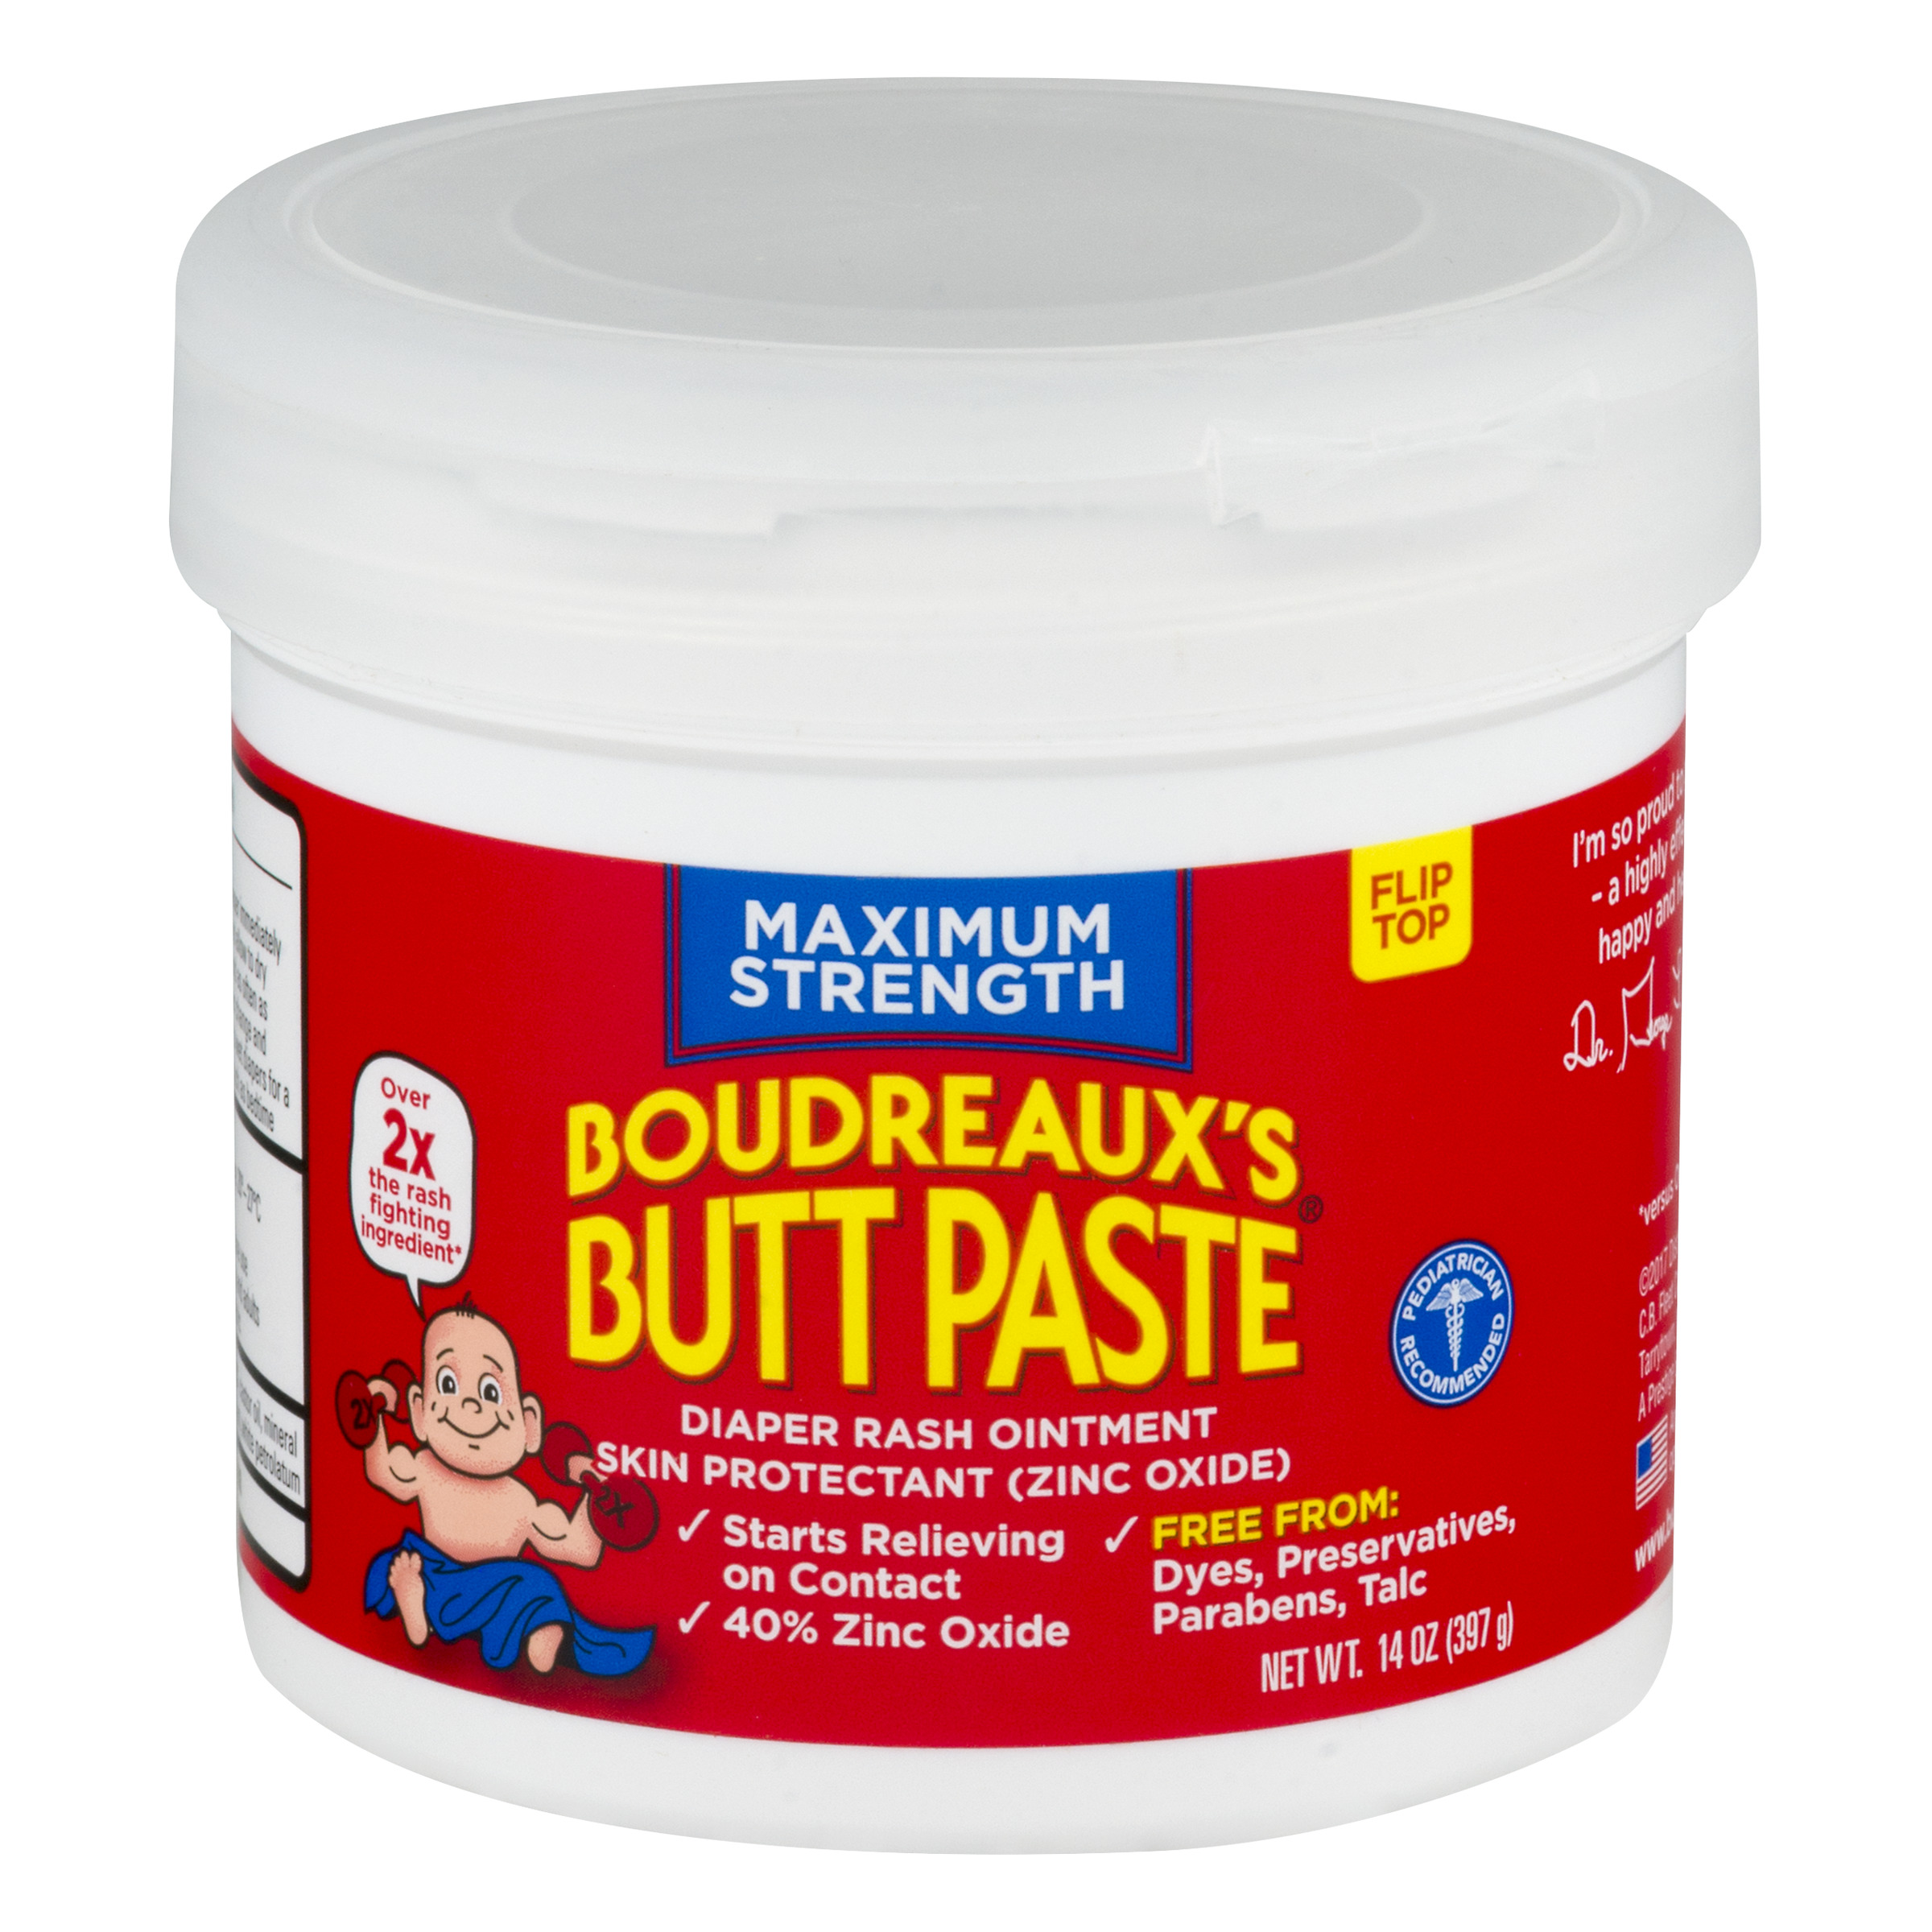 Boudreaux's Butt Paste Diaper Rash Ointment, Maximum Strength, 14 Ounce by Boudreaux%27s Butt Paste